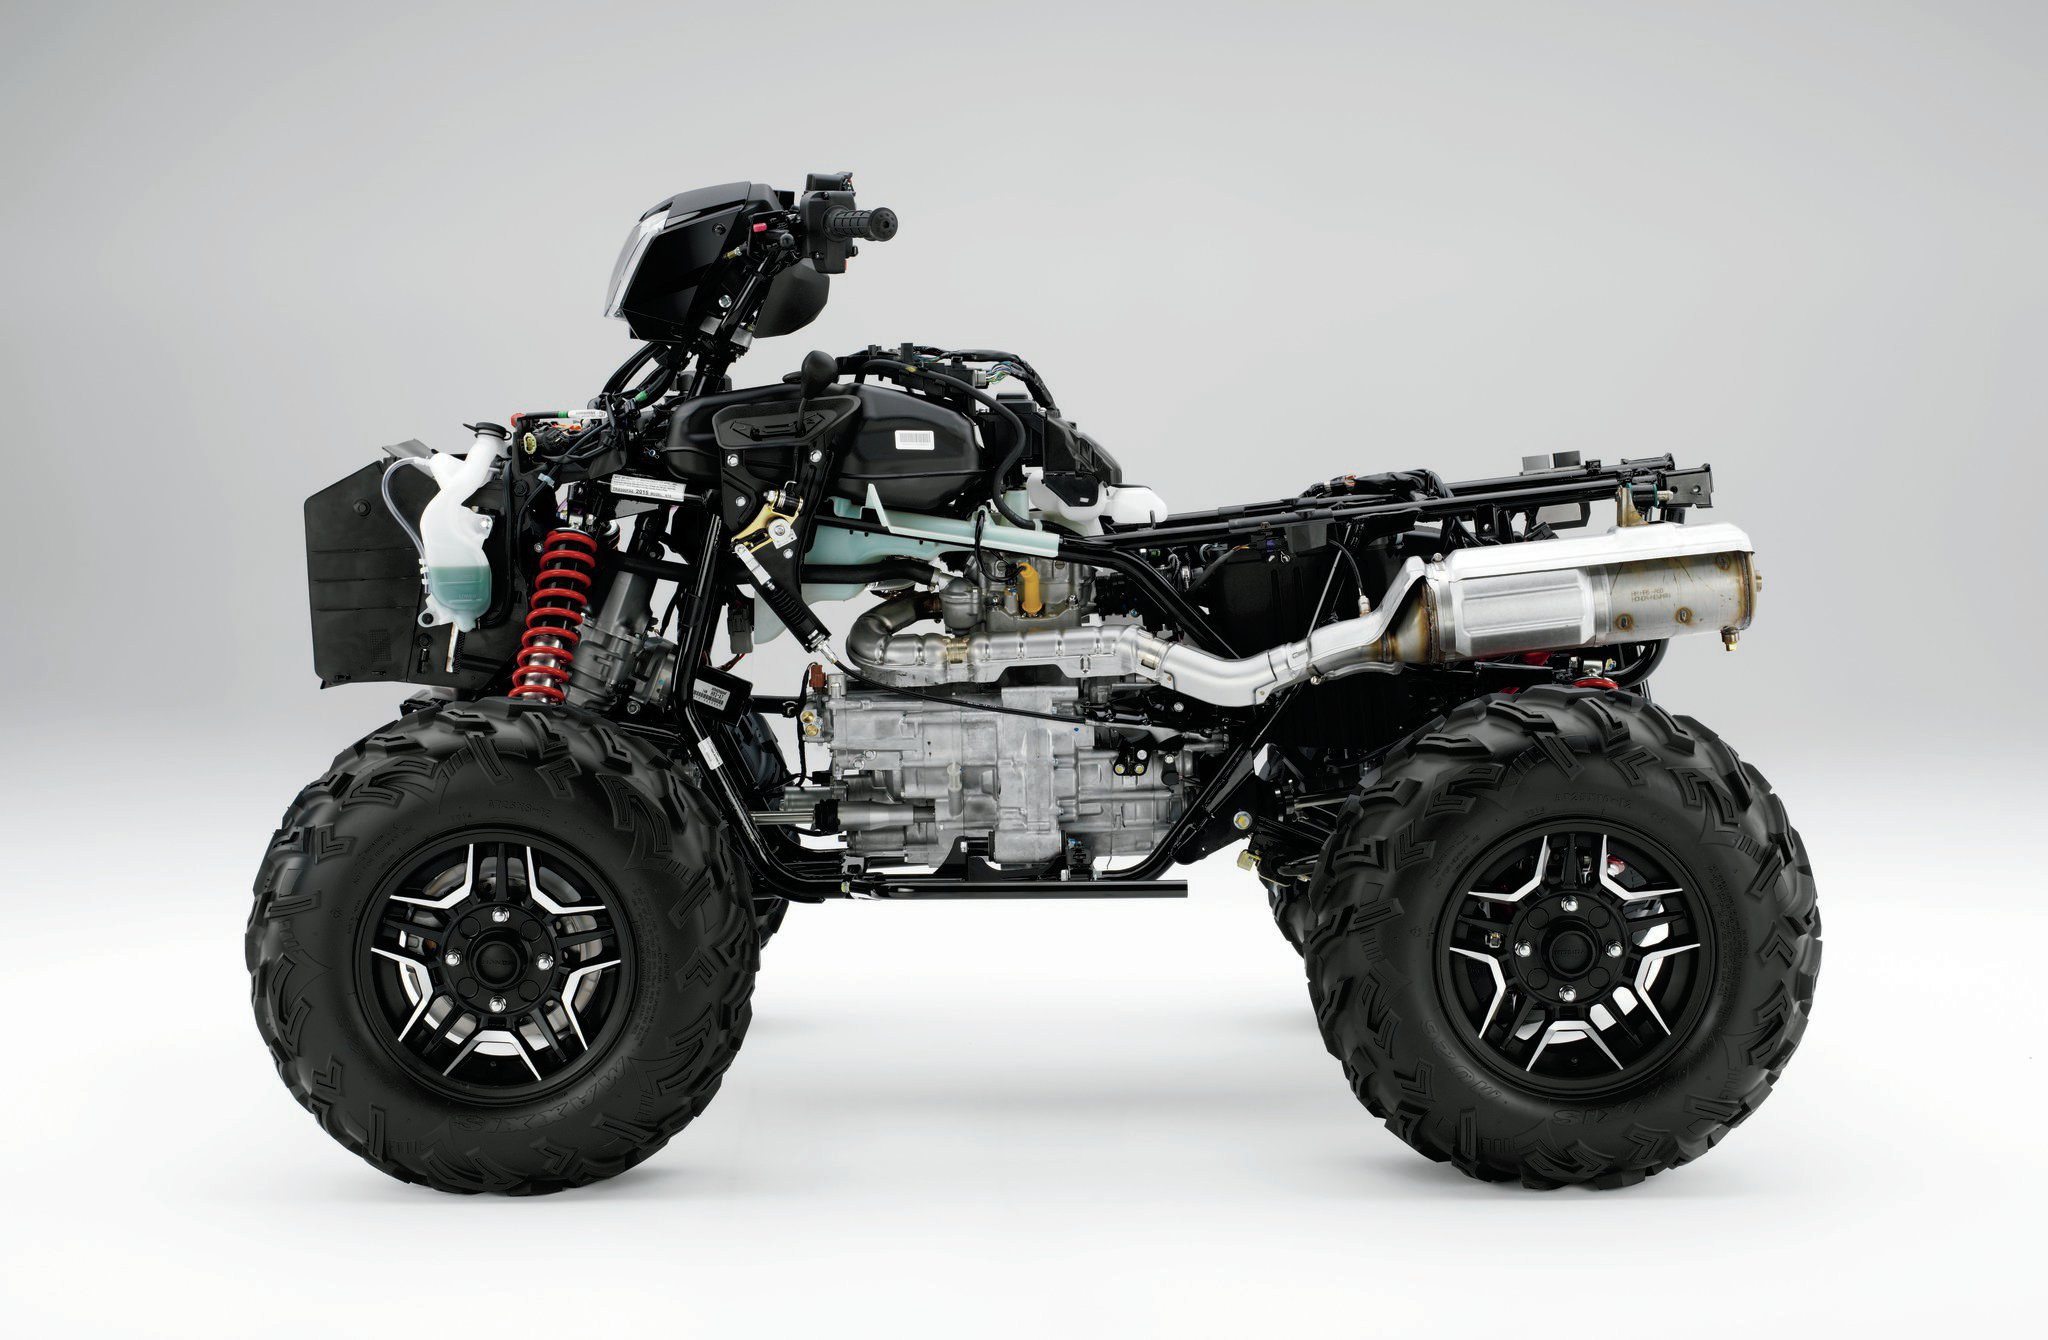 A notable improvement to the Honda 500-class (475cc) engine is the electronic fuel injection, now delivering smooth power and fuel efficiency of up to 12 percent. A newly designed five-speed manual gearbox and a five-speed automatic dual clutch transmission (DCT) complement the firebox, as does the performance muffler.